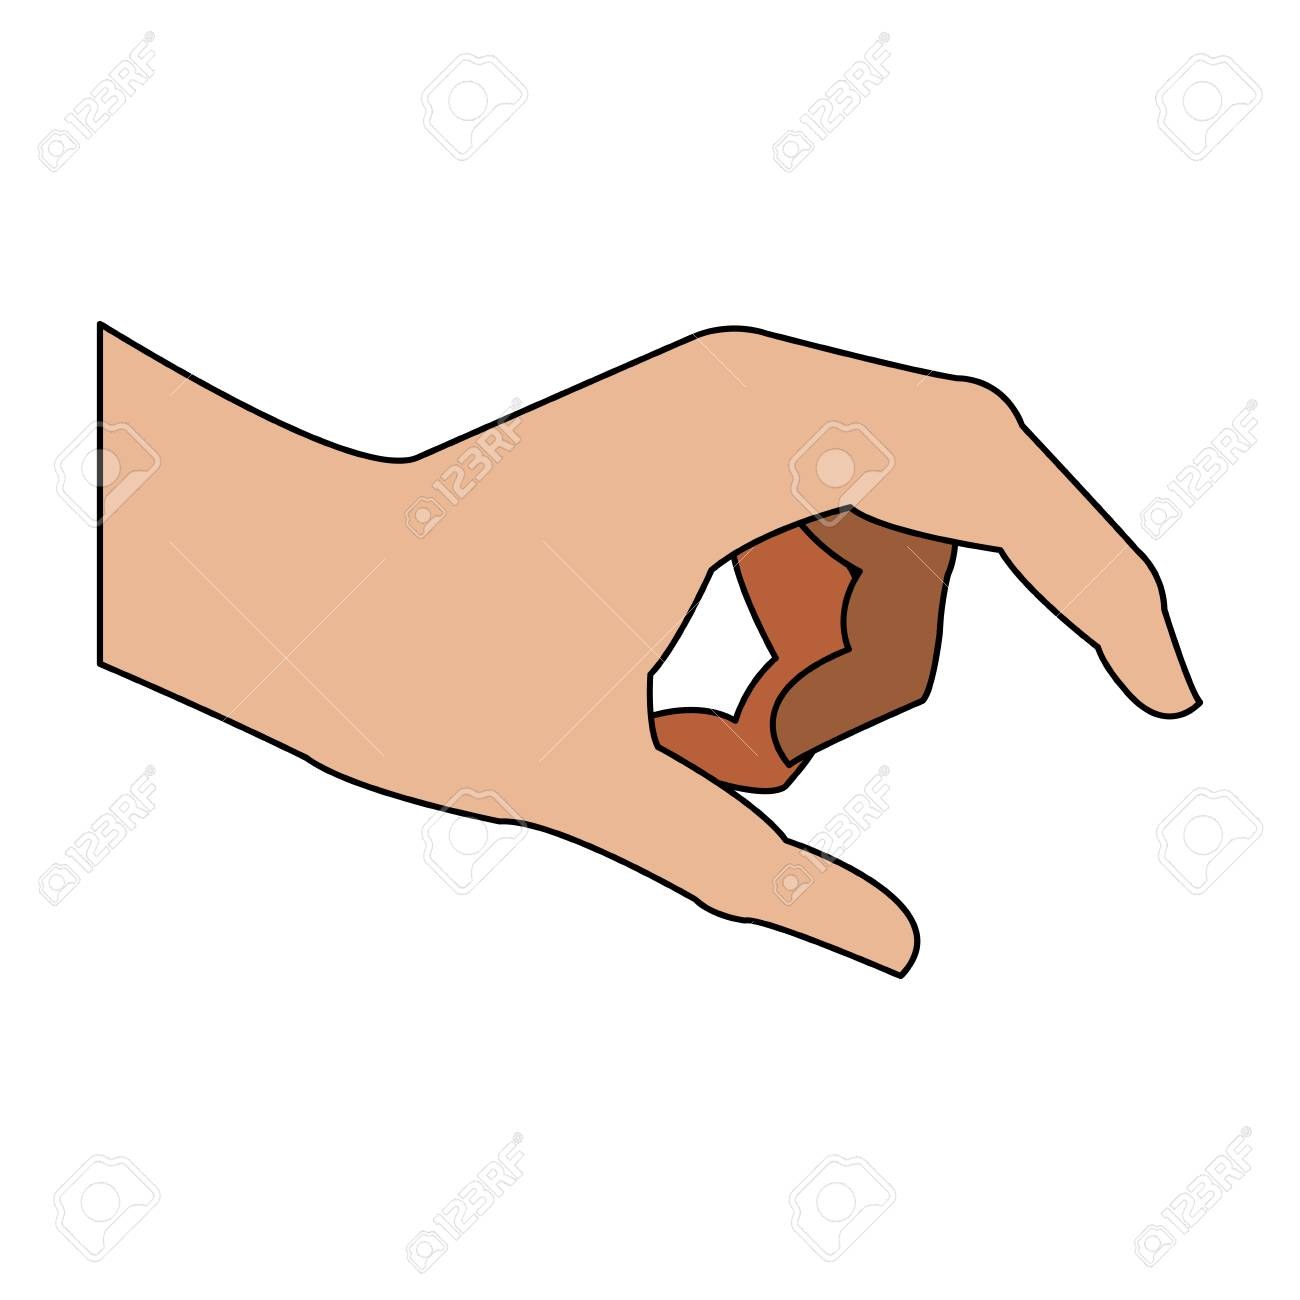 Hand holding something icon vector illustration graphic design.